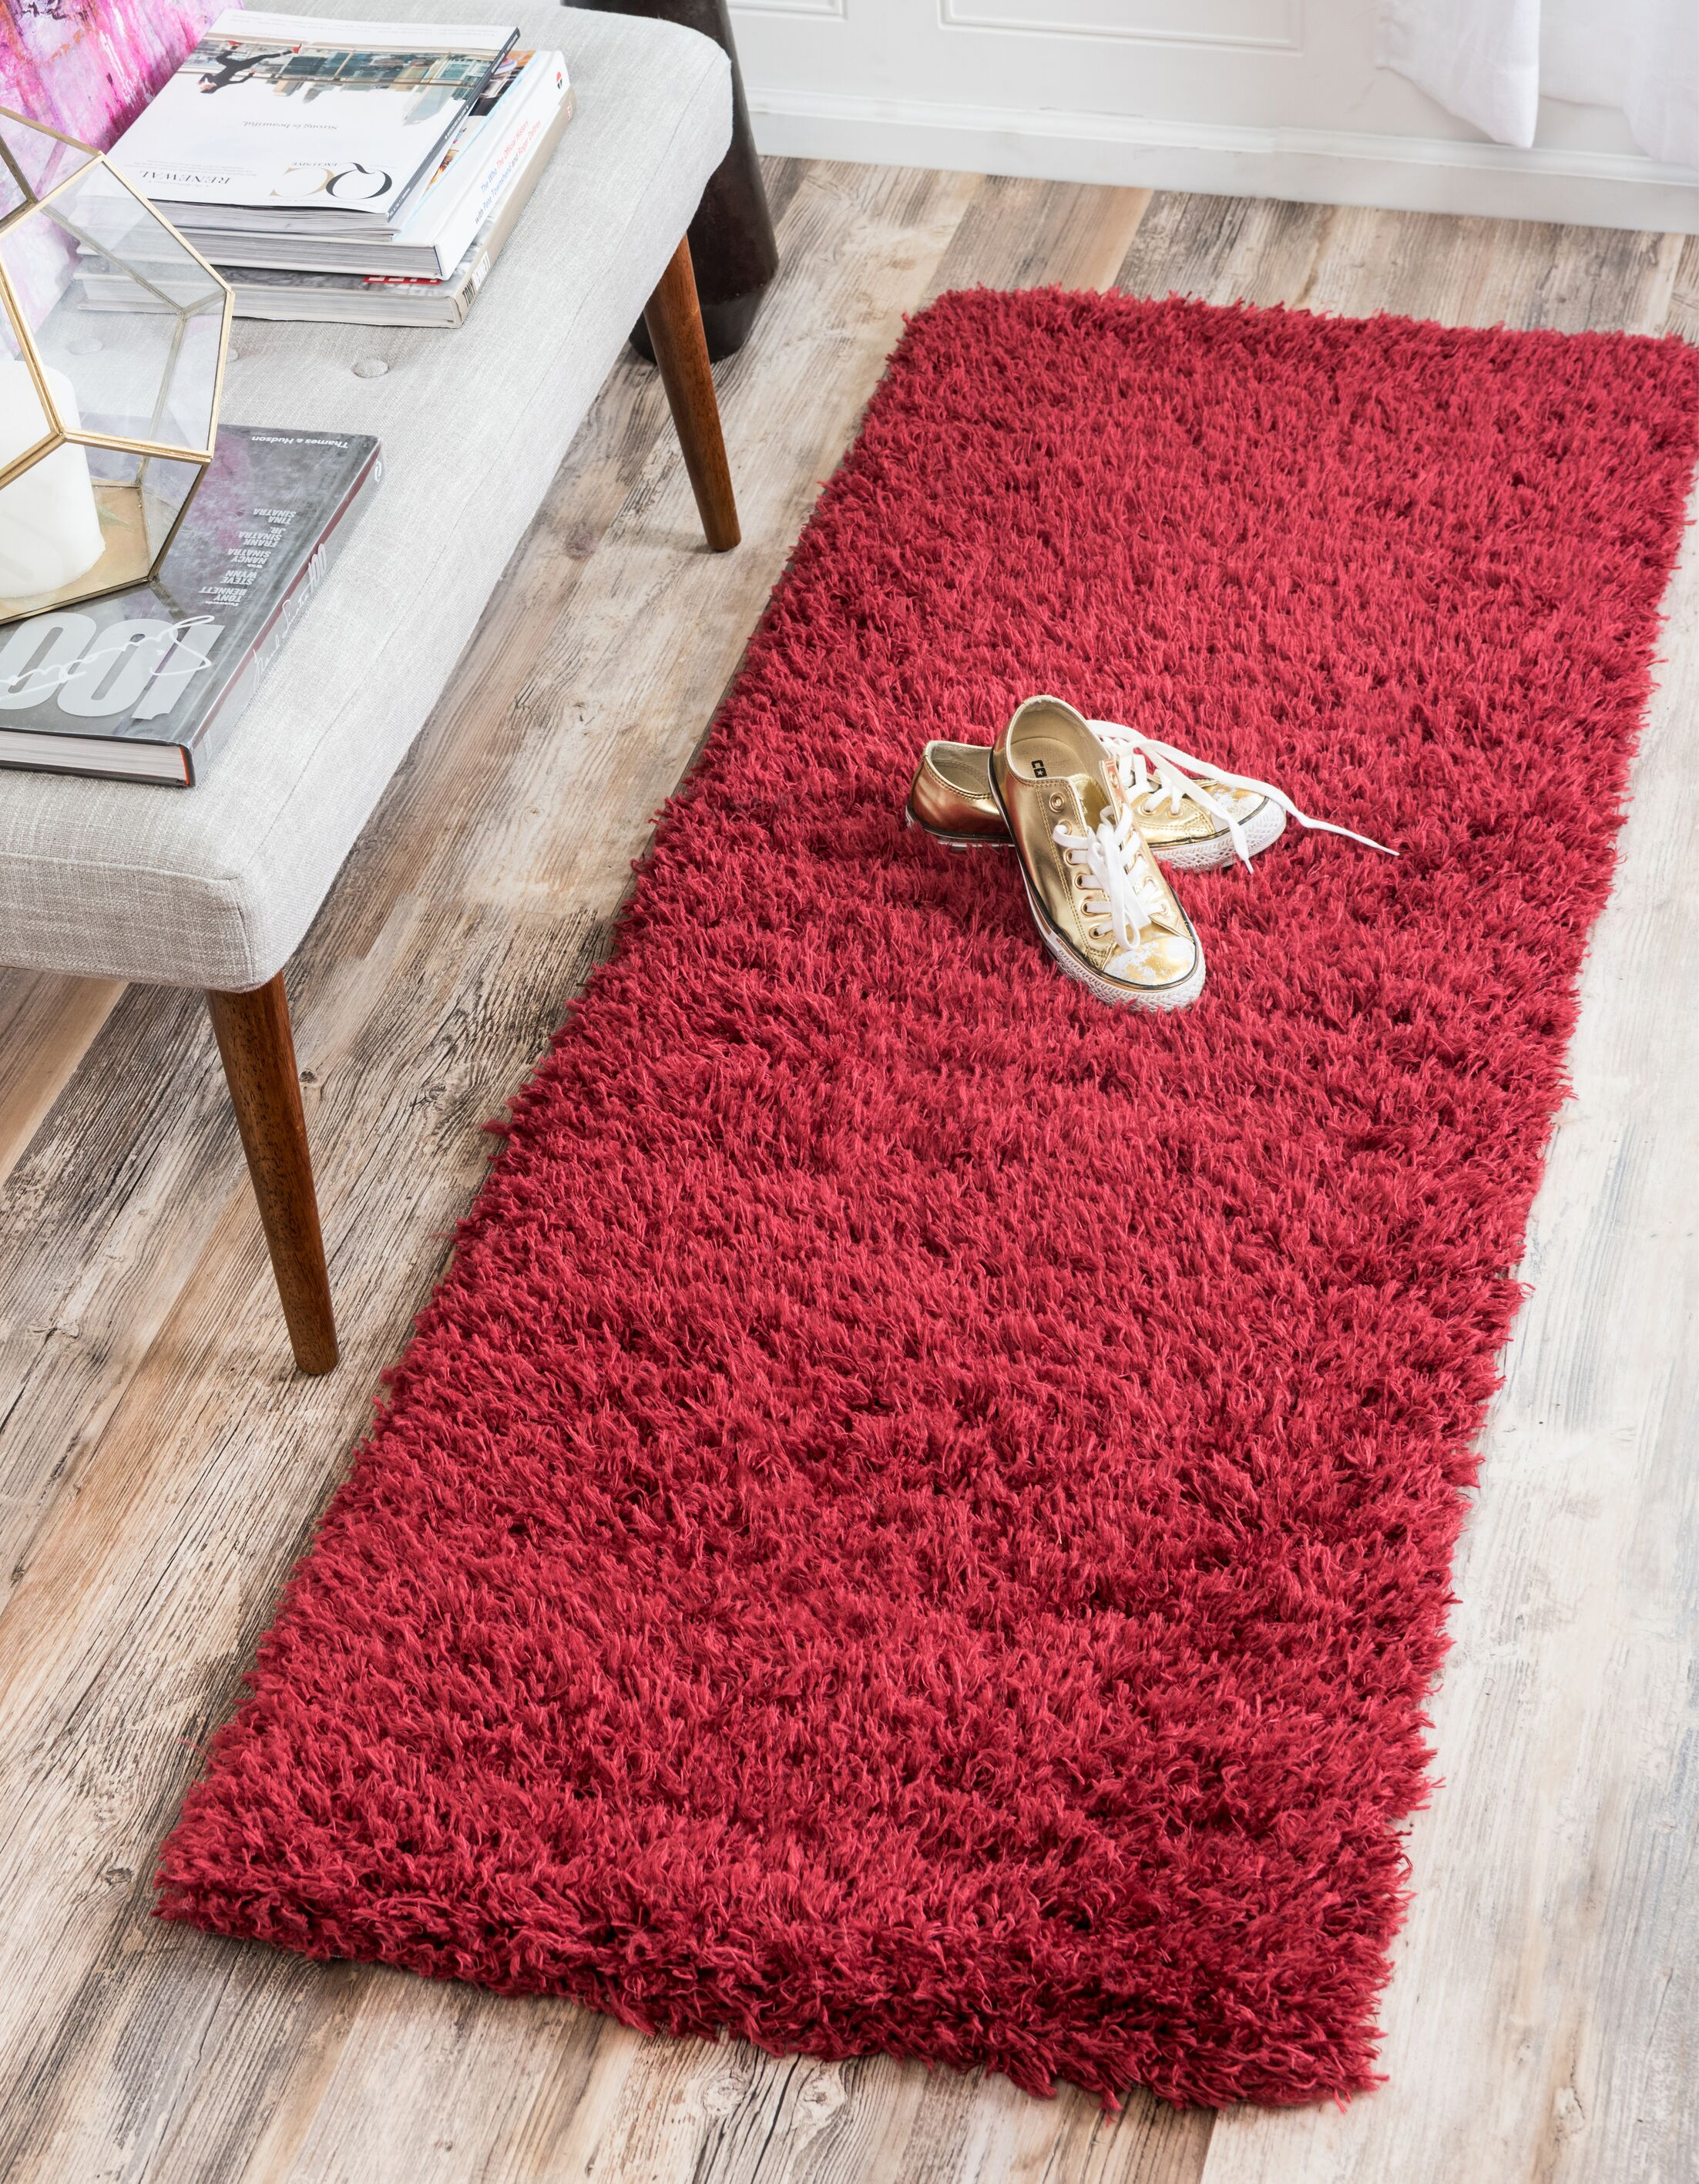 Red Area Rug Rug Size: Runner 2' x 6'